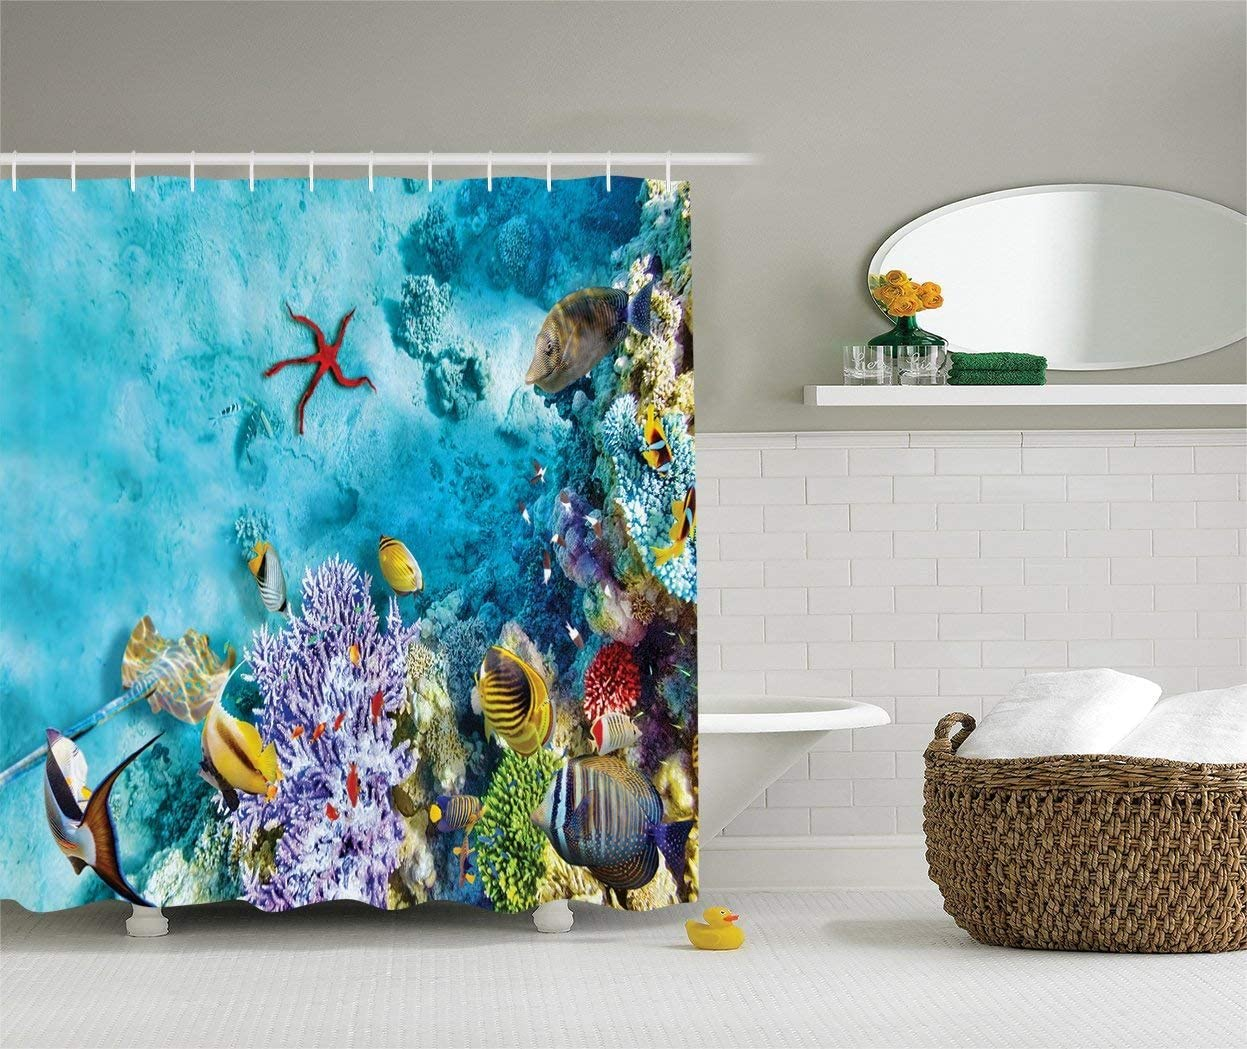 Ambesonne Ocean Shower Curtain, Corals Fishes Jellyfish Scatefish Starfish in Shallow Underwater, Cloth Fabric Bathroom Decor Set with Hooks, 84